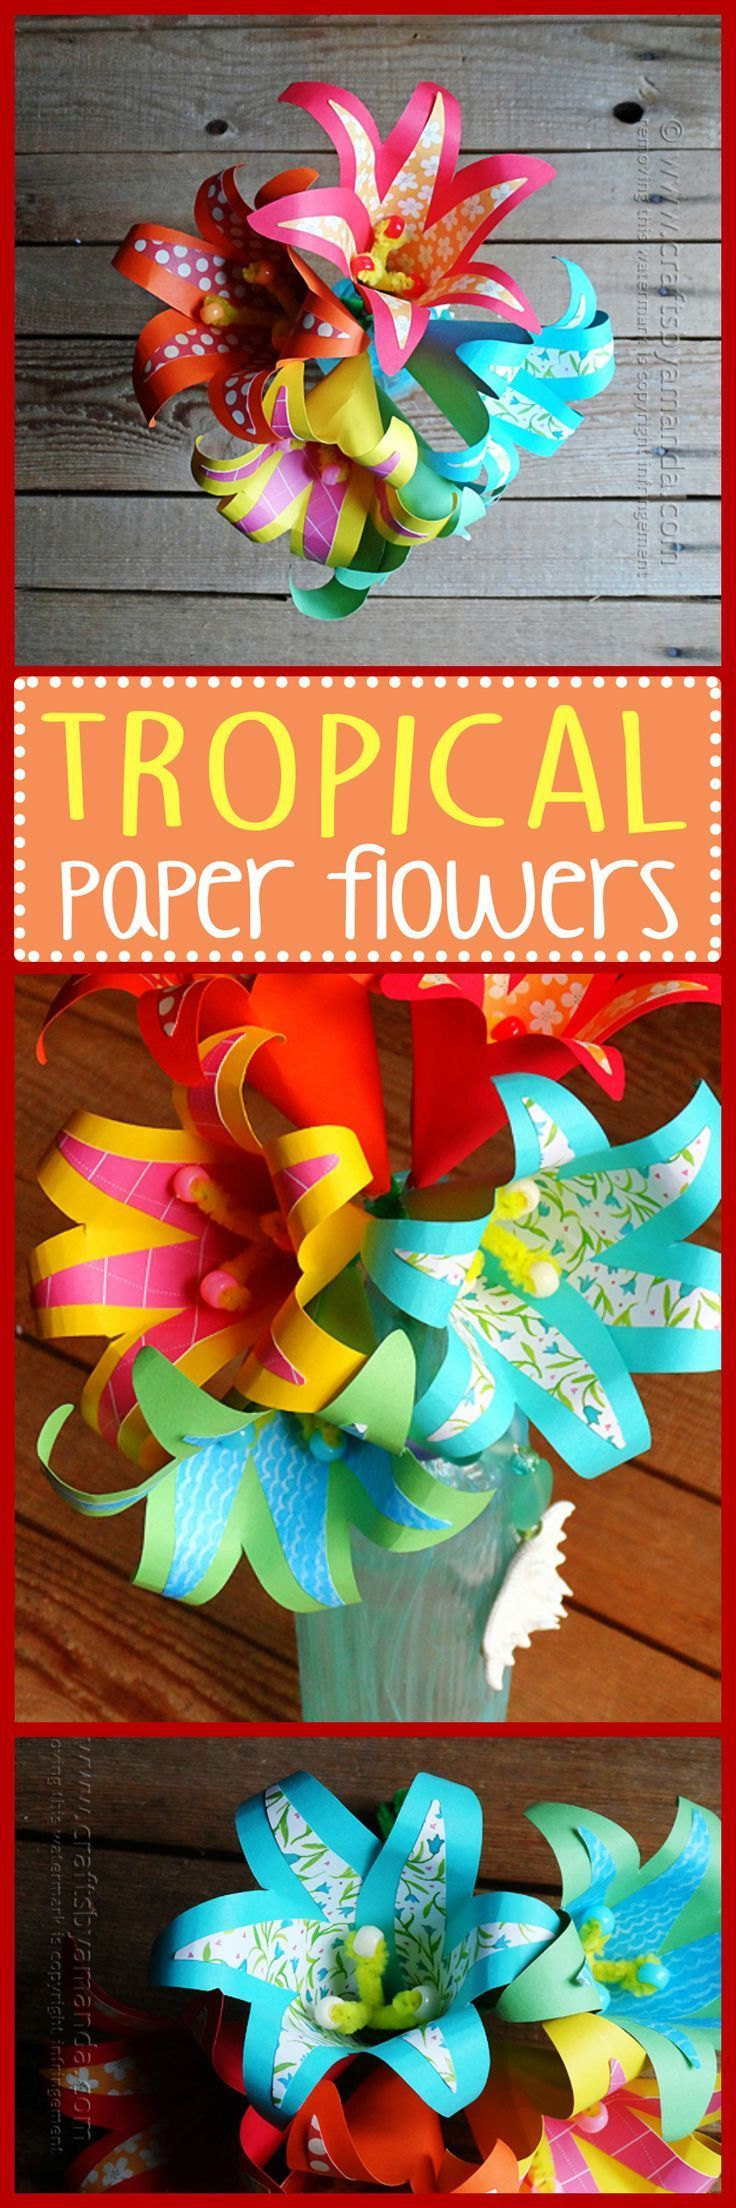 These bright and beautiful paper flowers are made from scrapbook paper and cardstock and were inspired by the gorgeous tropical flowers in warm weather climates. So if you want to have a bit of the tropics in your home year round, make these tropical pape